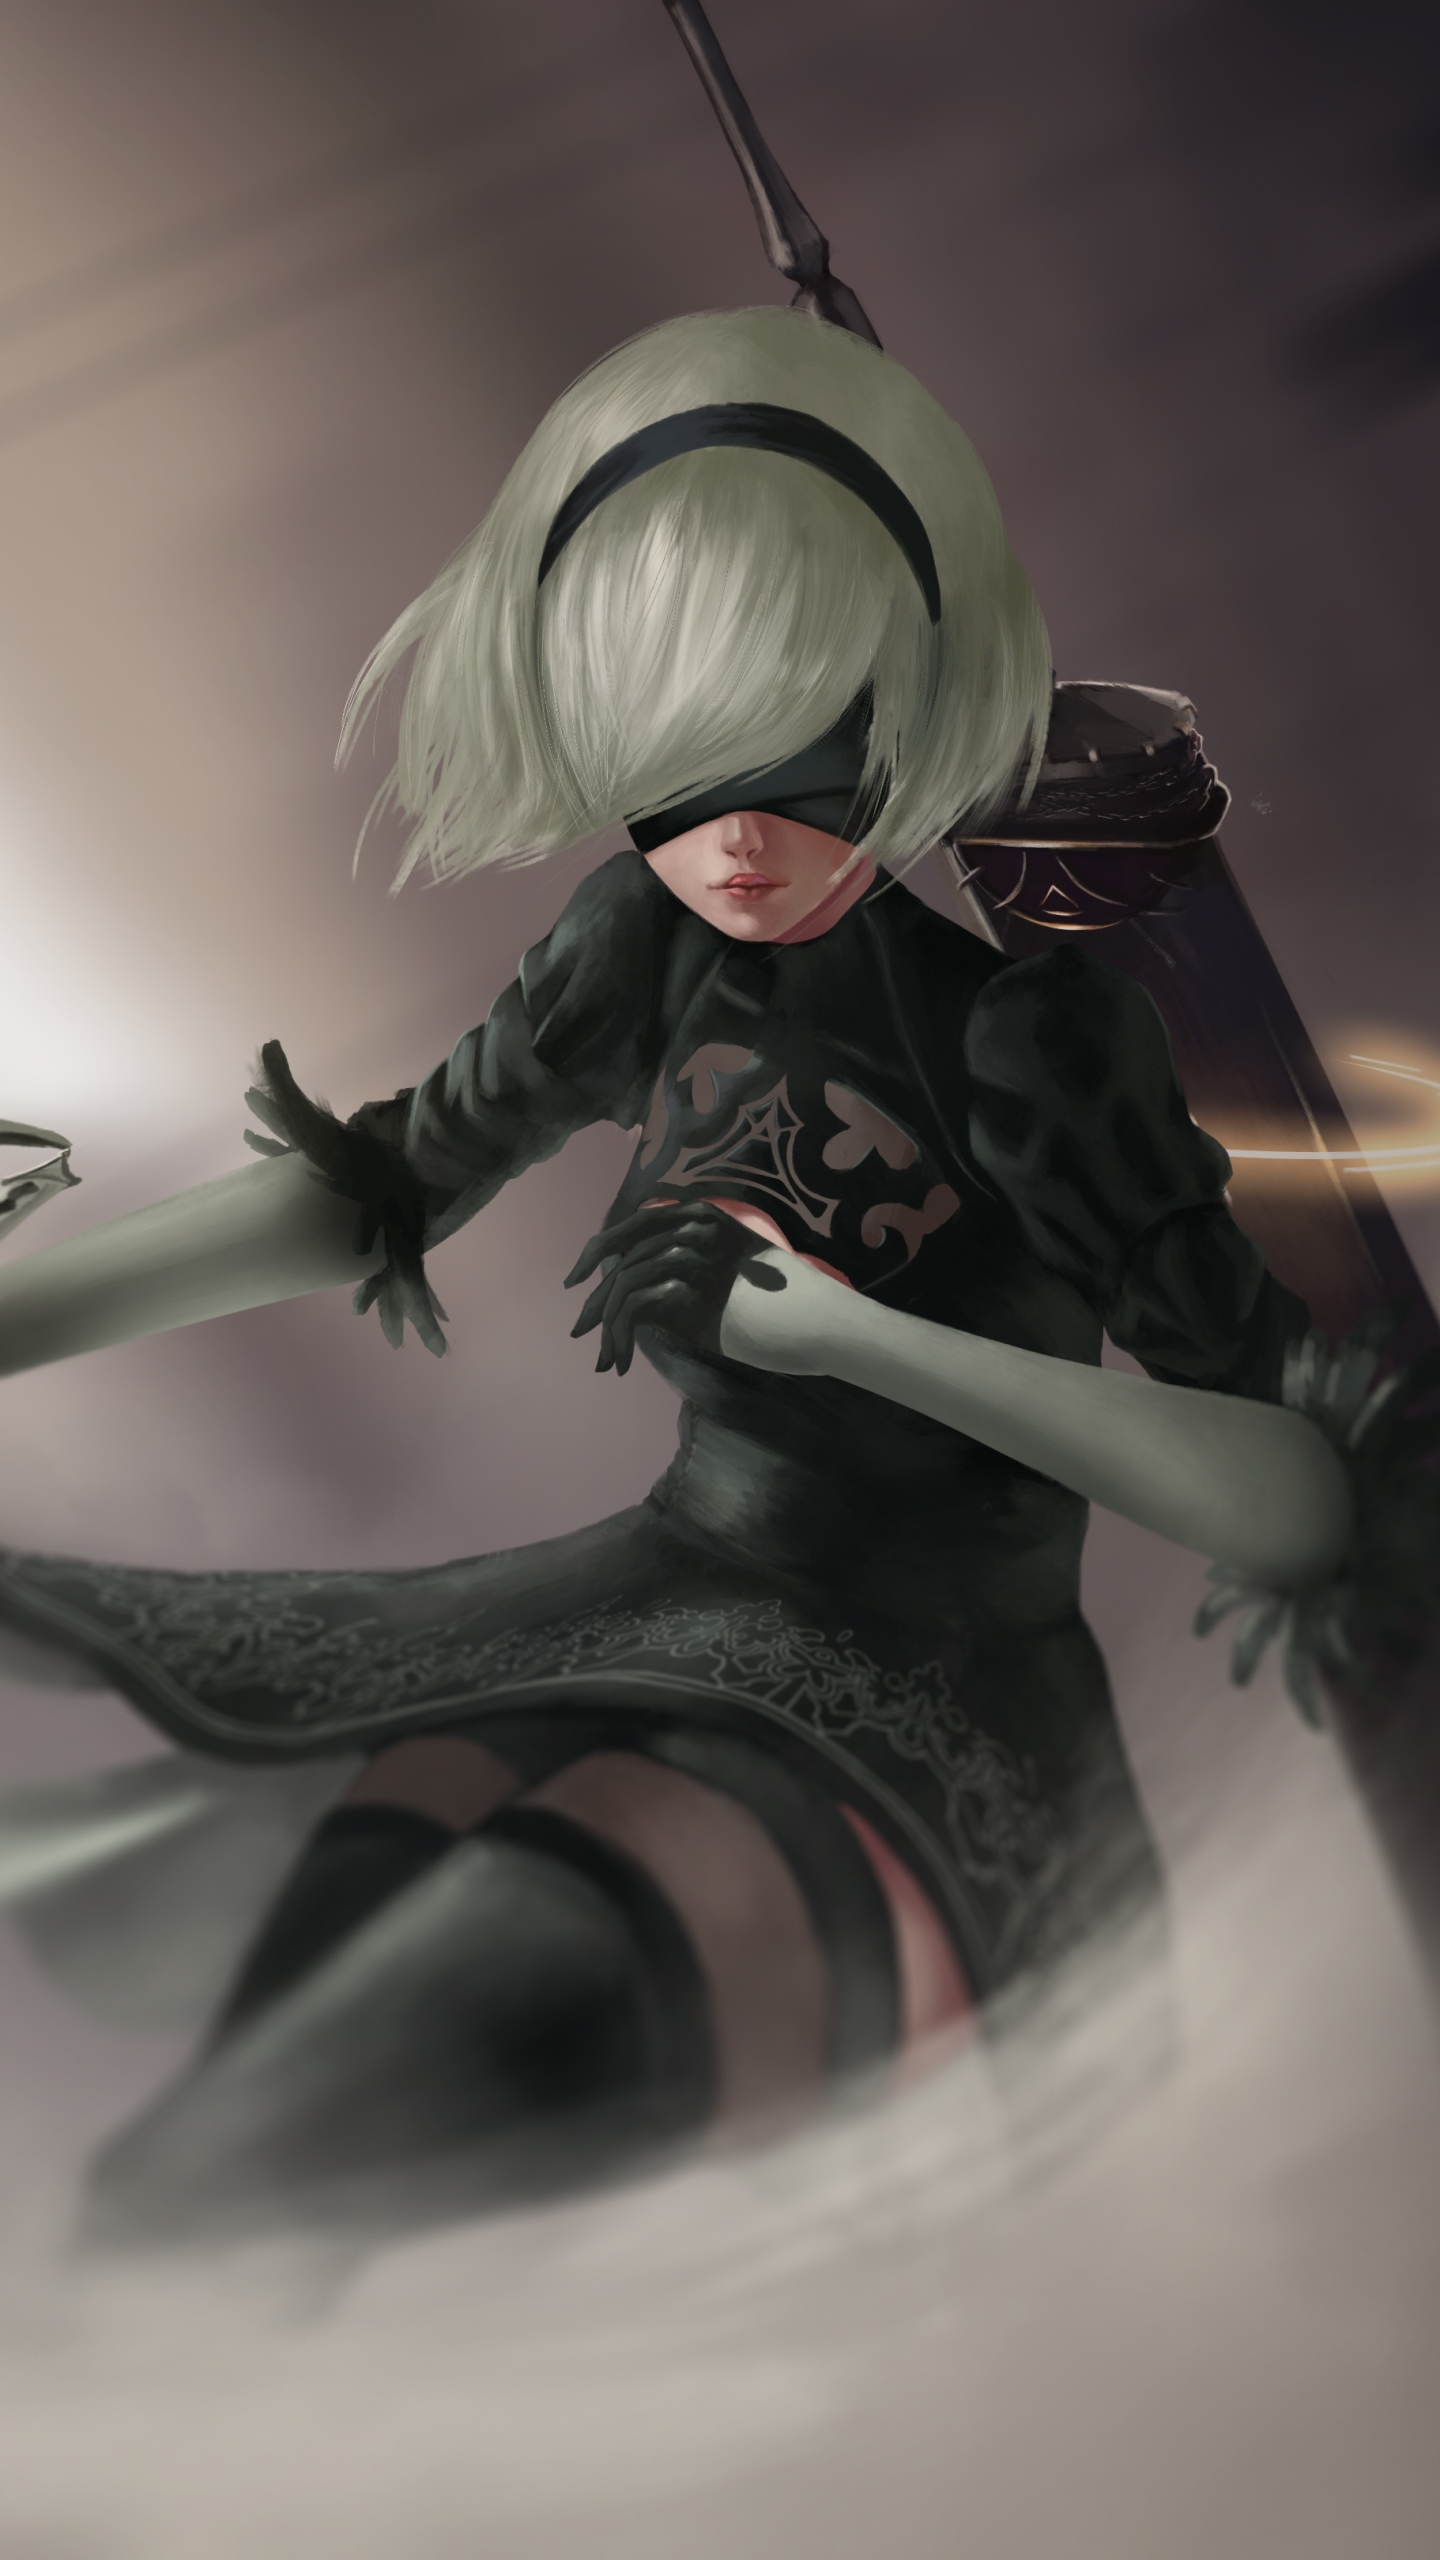 Video Game Nier Automata 1440x2560 Wallpaper Id 673000